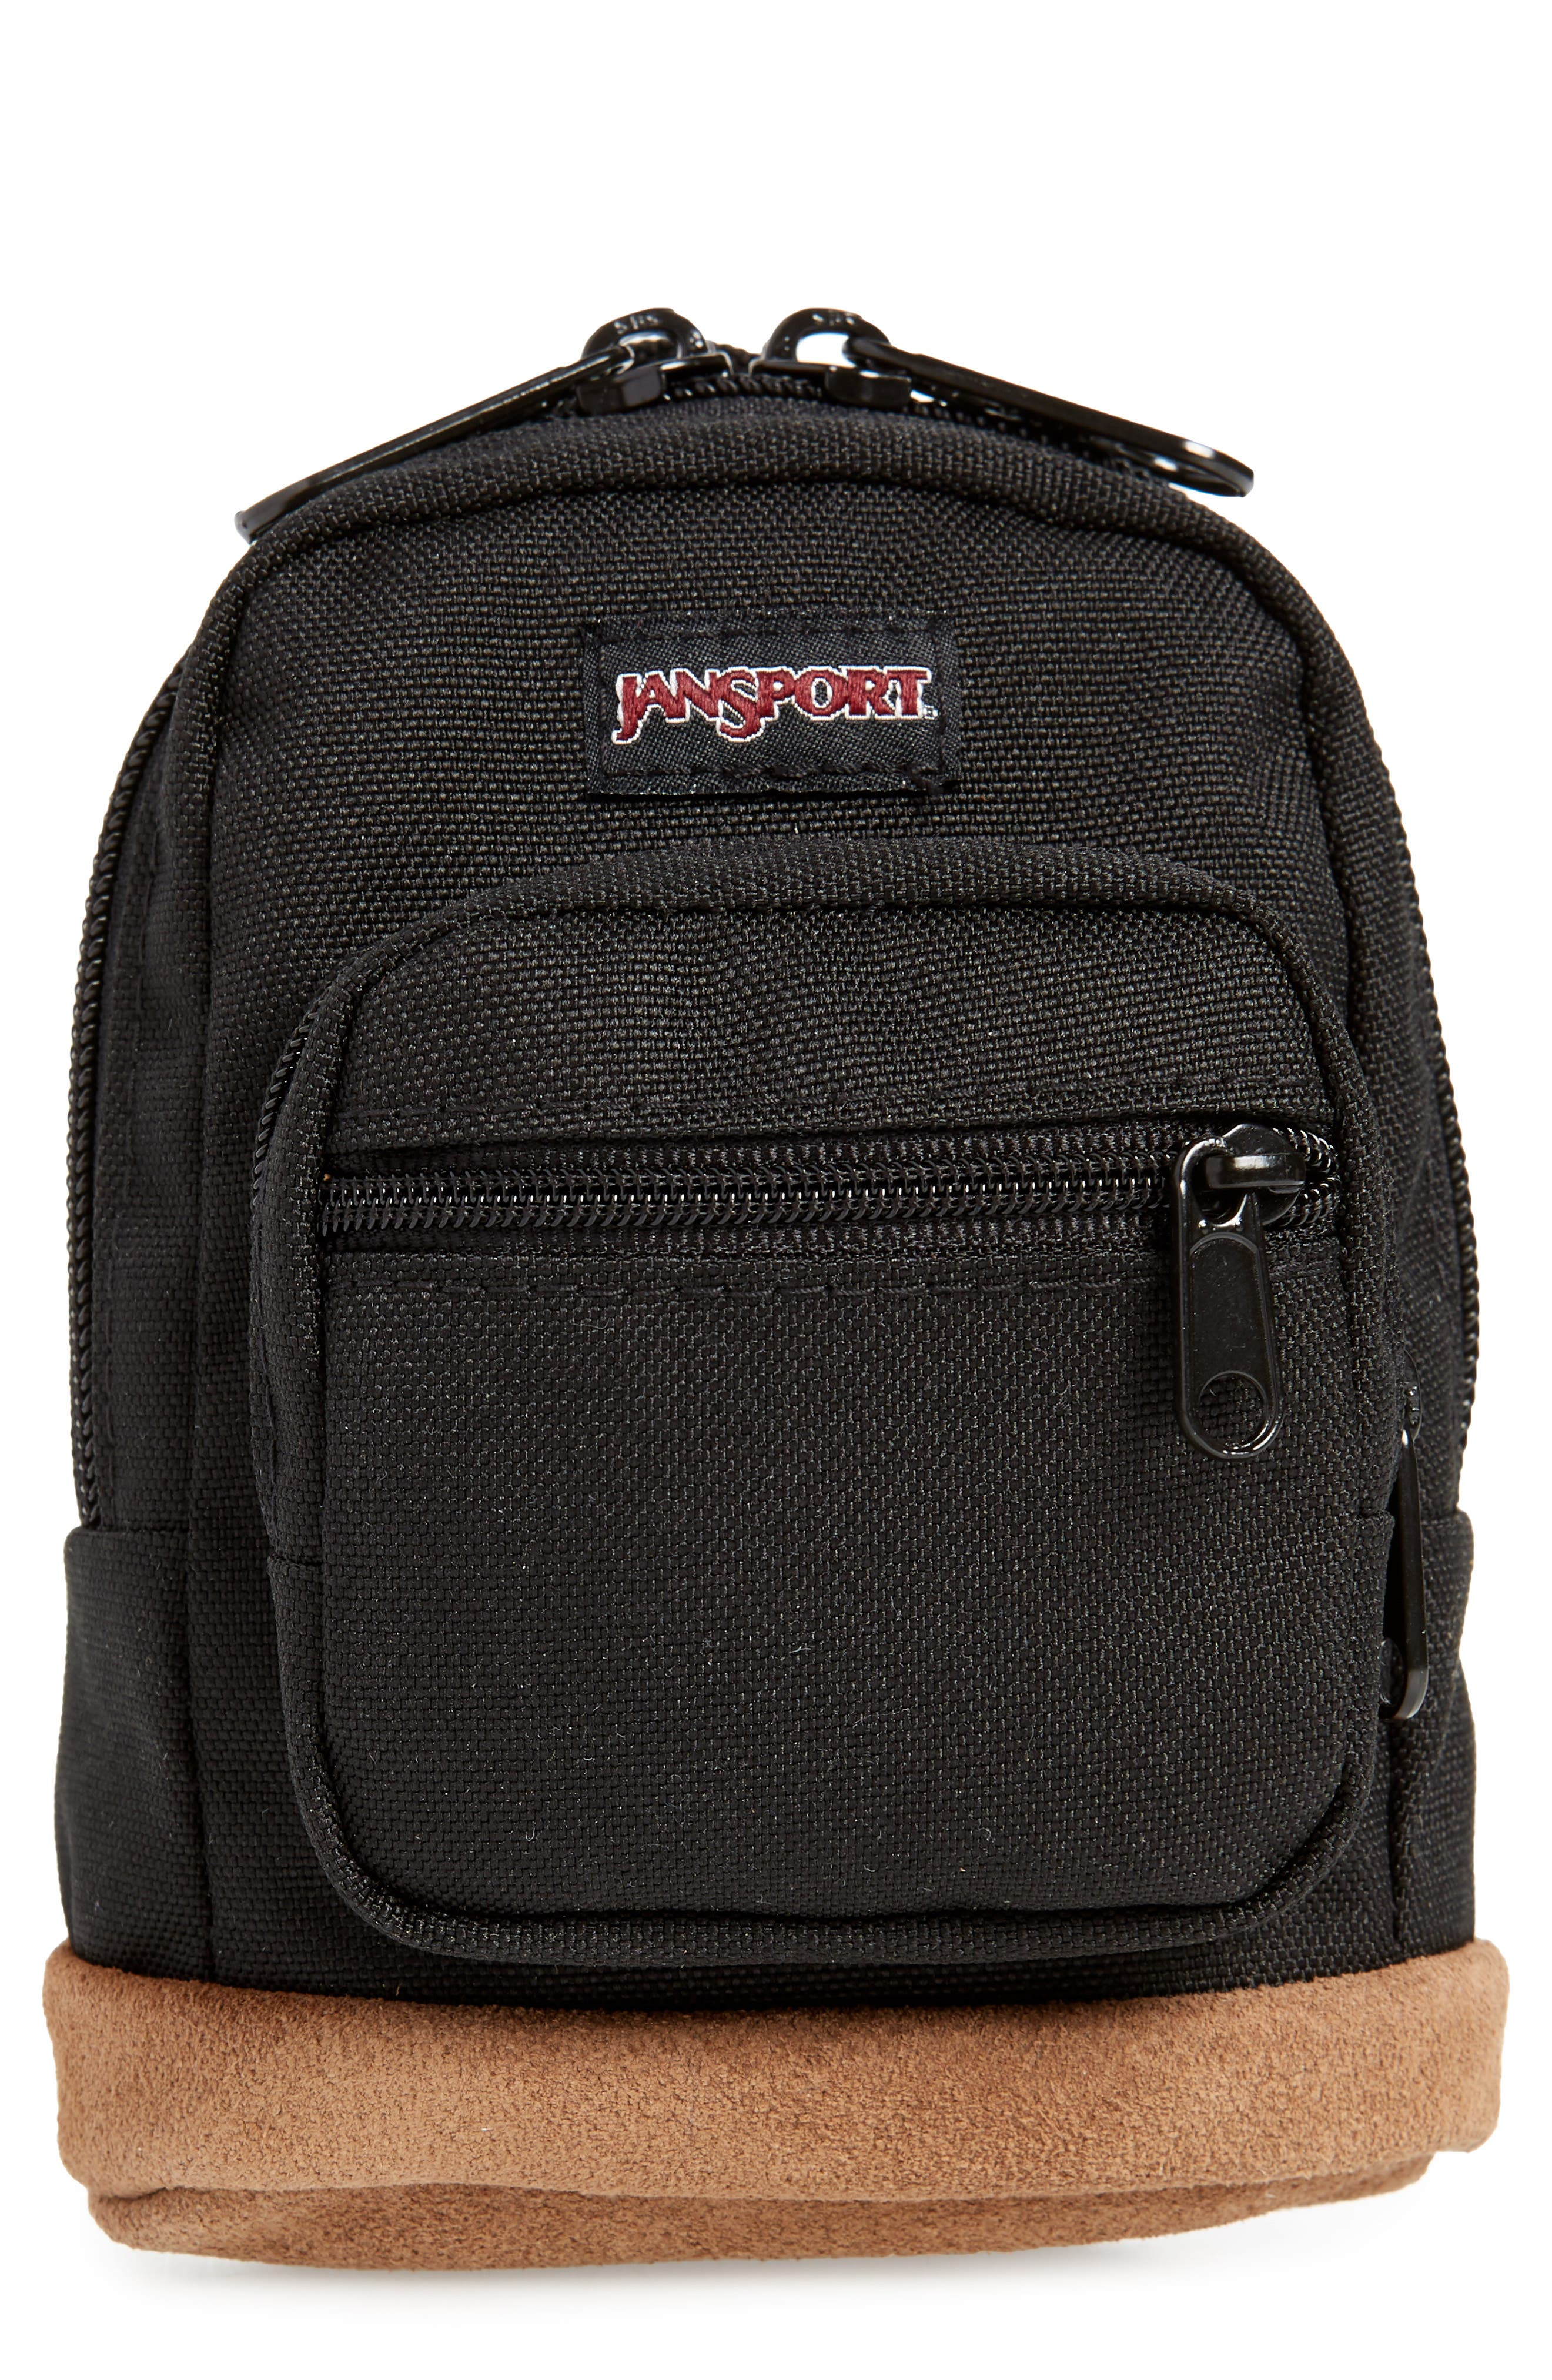 JANSPORT Right Pouch, Main, color, 002